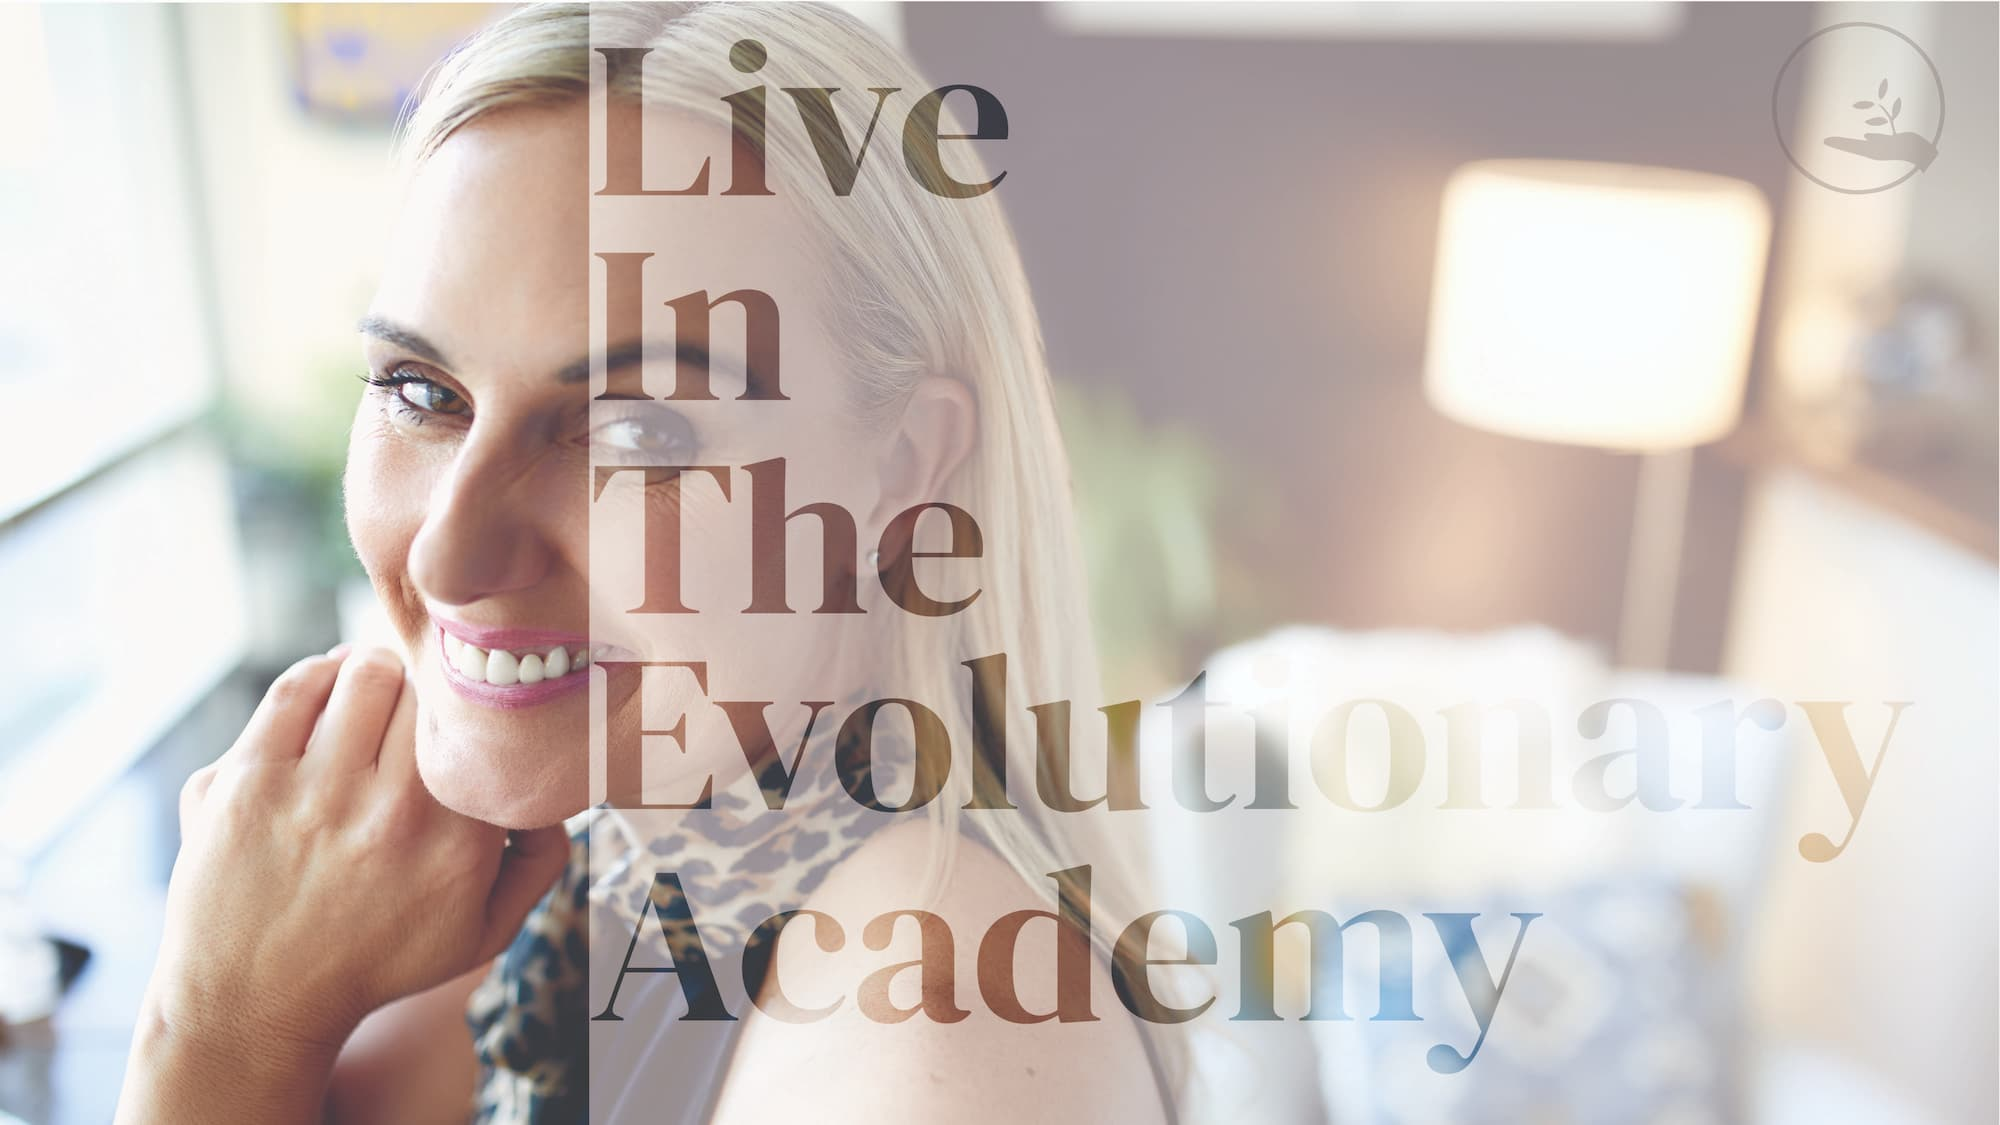 Live in the evolutionary academy